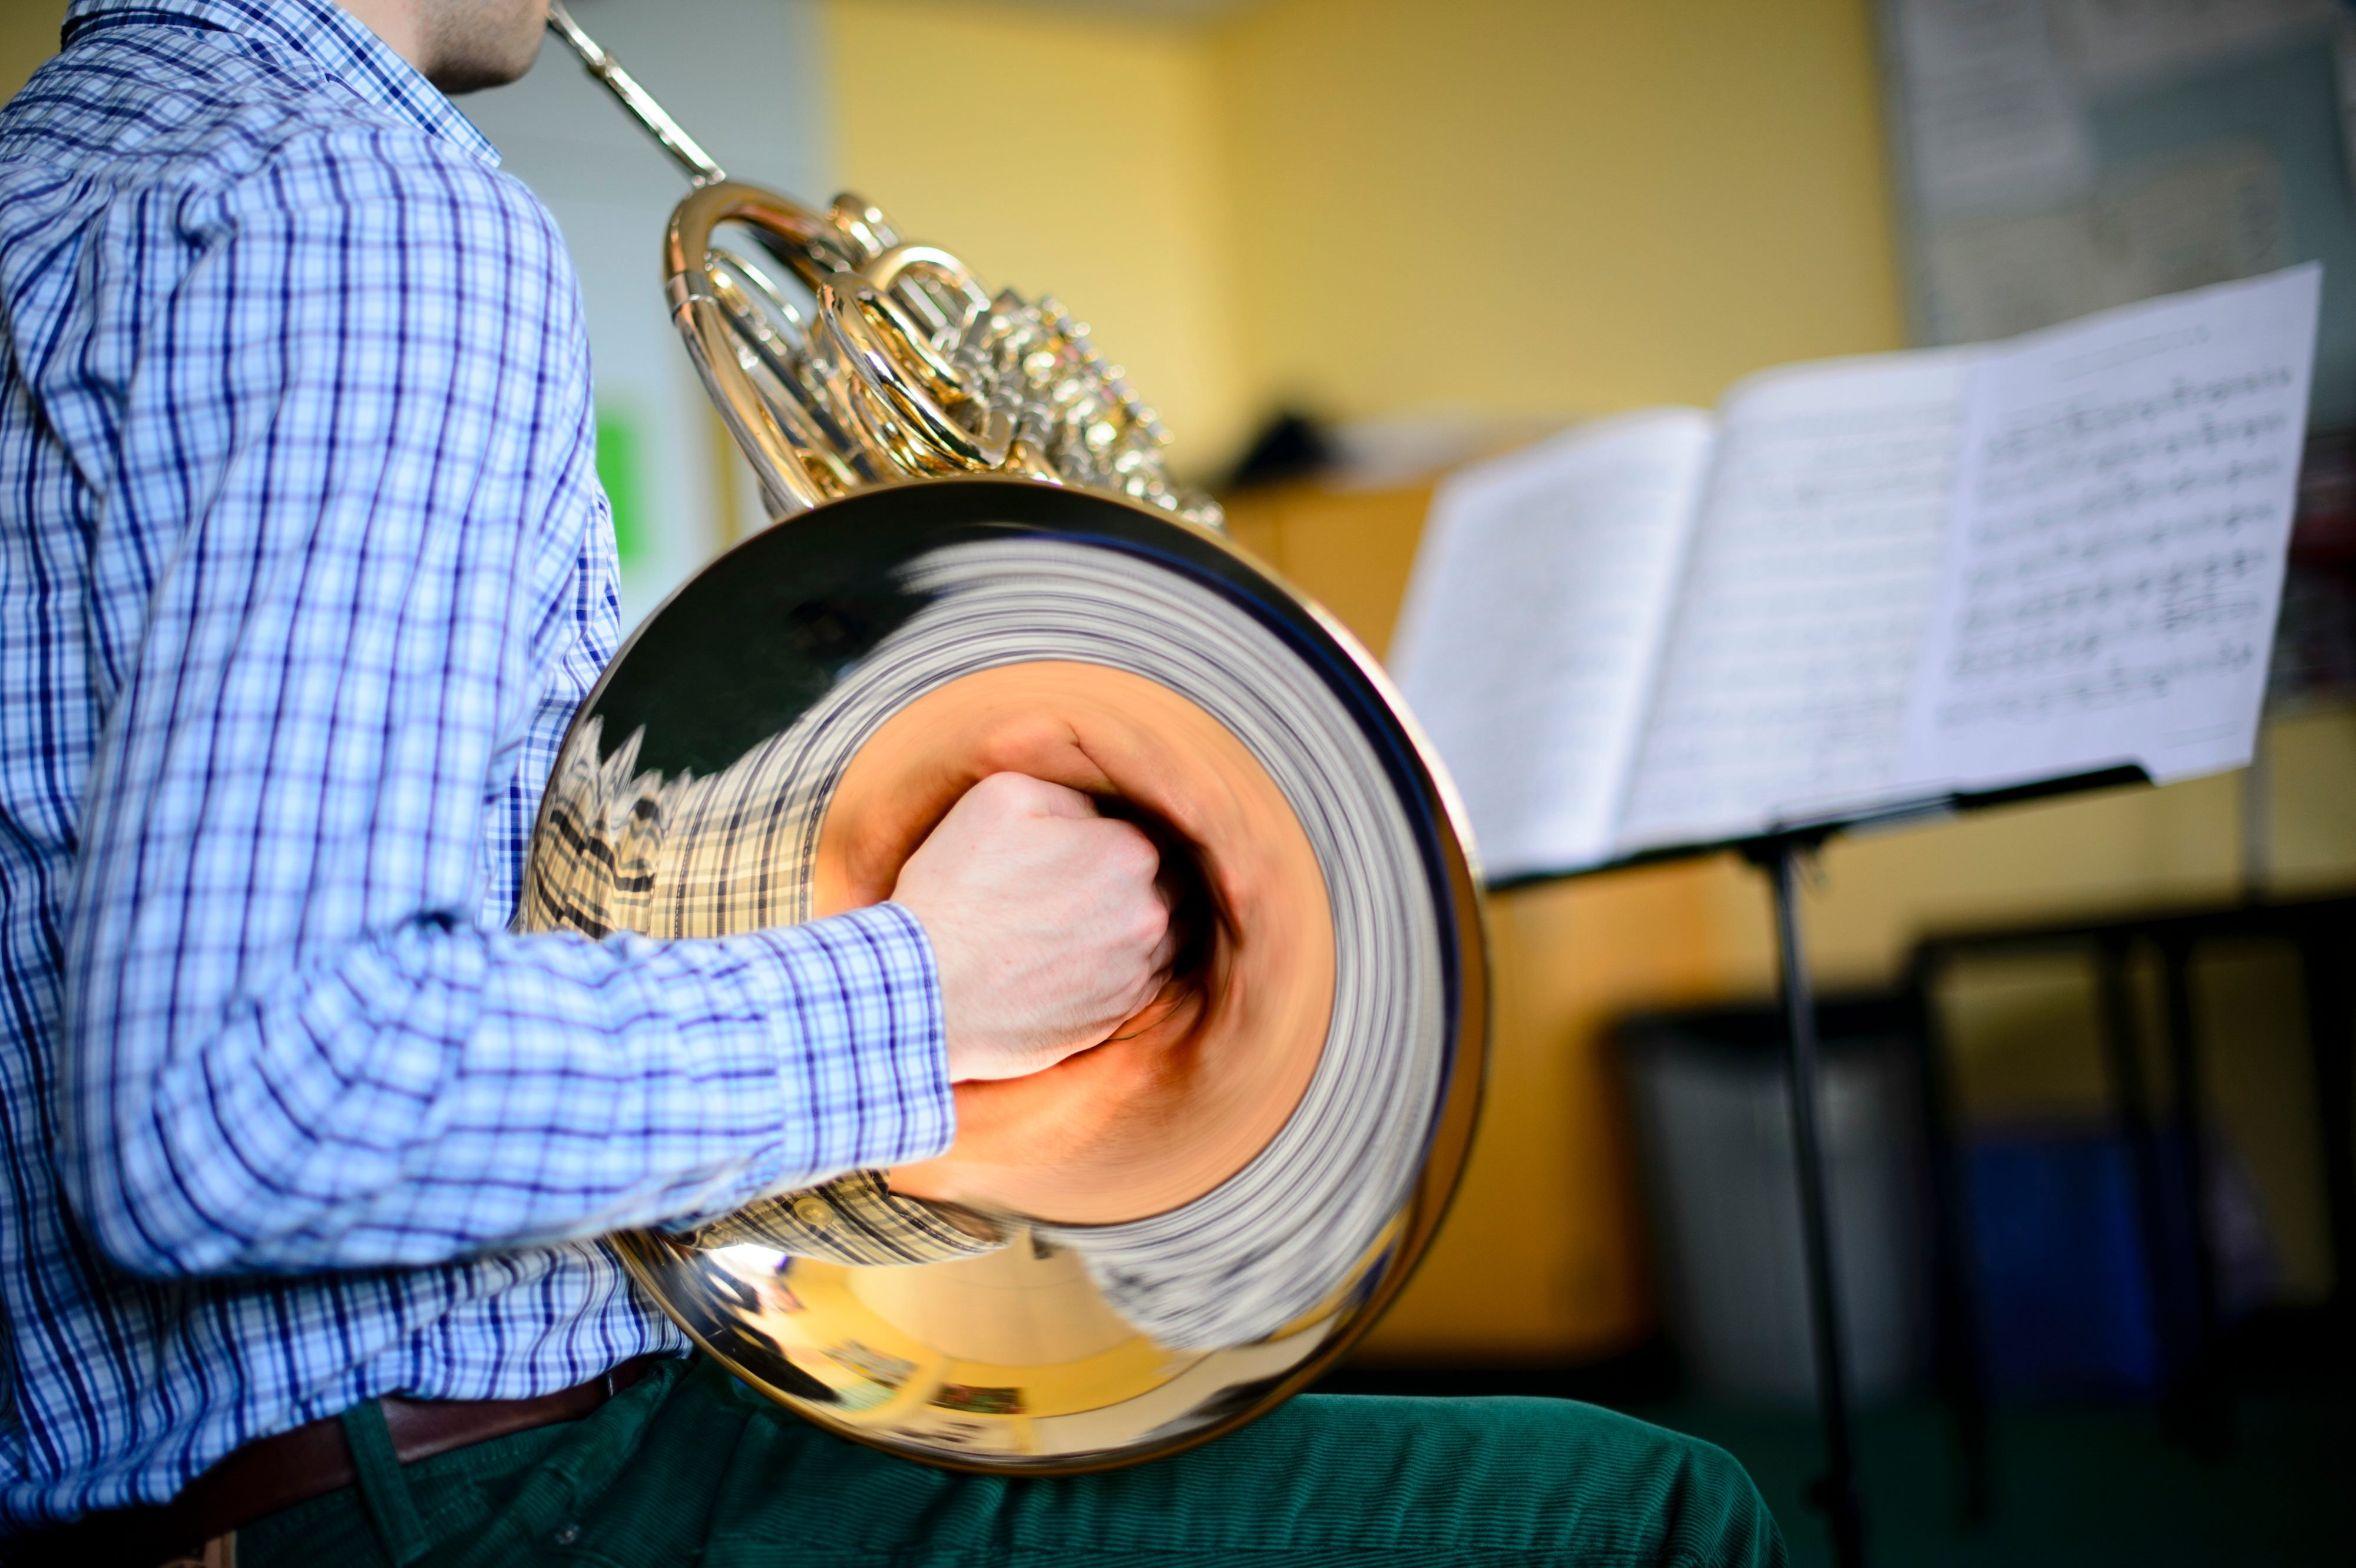 A Young male musician practicising french horn, part of Aberystwyth Arts Centre's MusicFest 2014